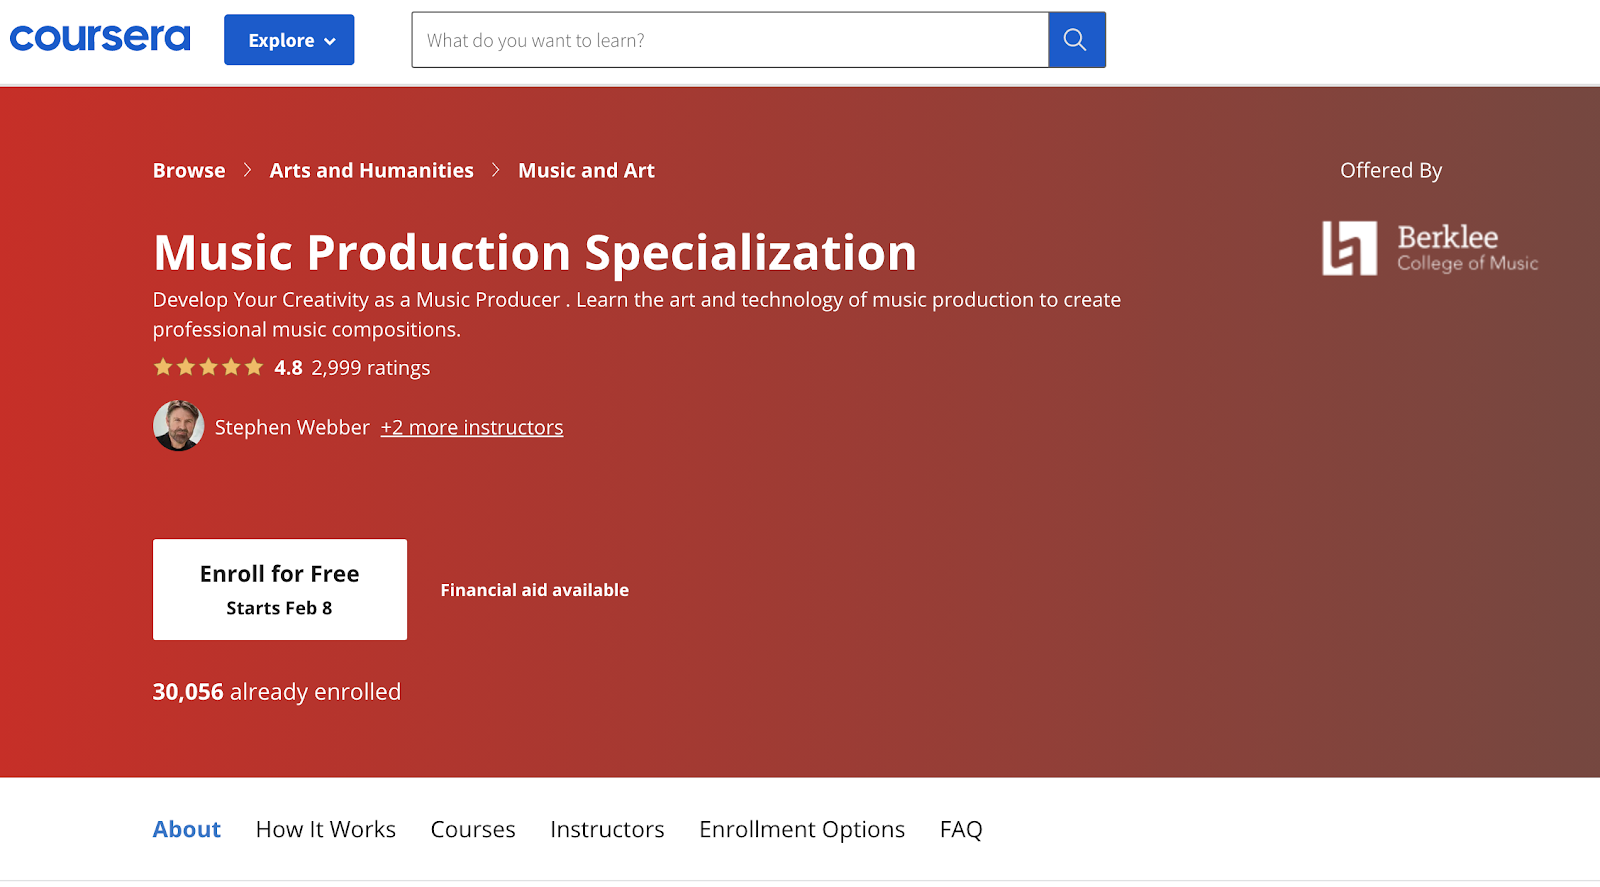 Screenshot of Music Production Specialization course on the Coursera website.